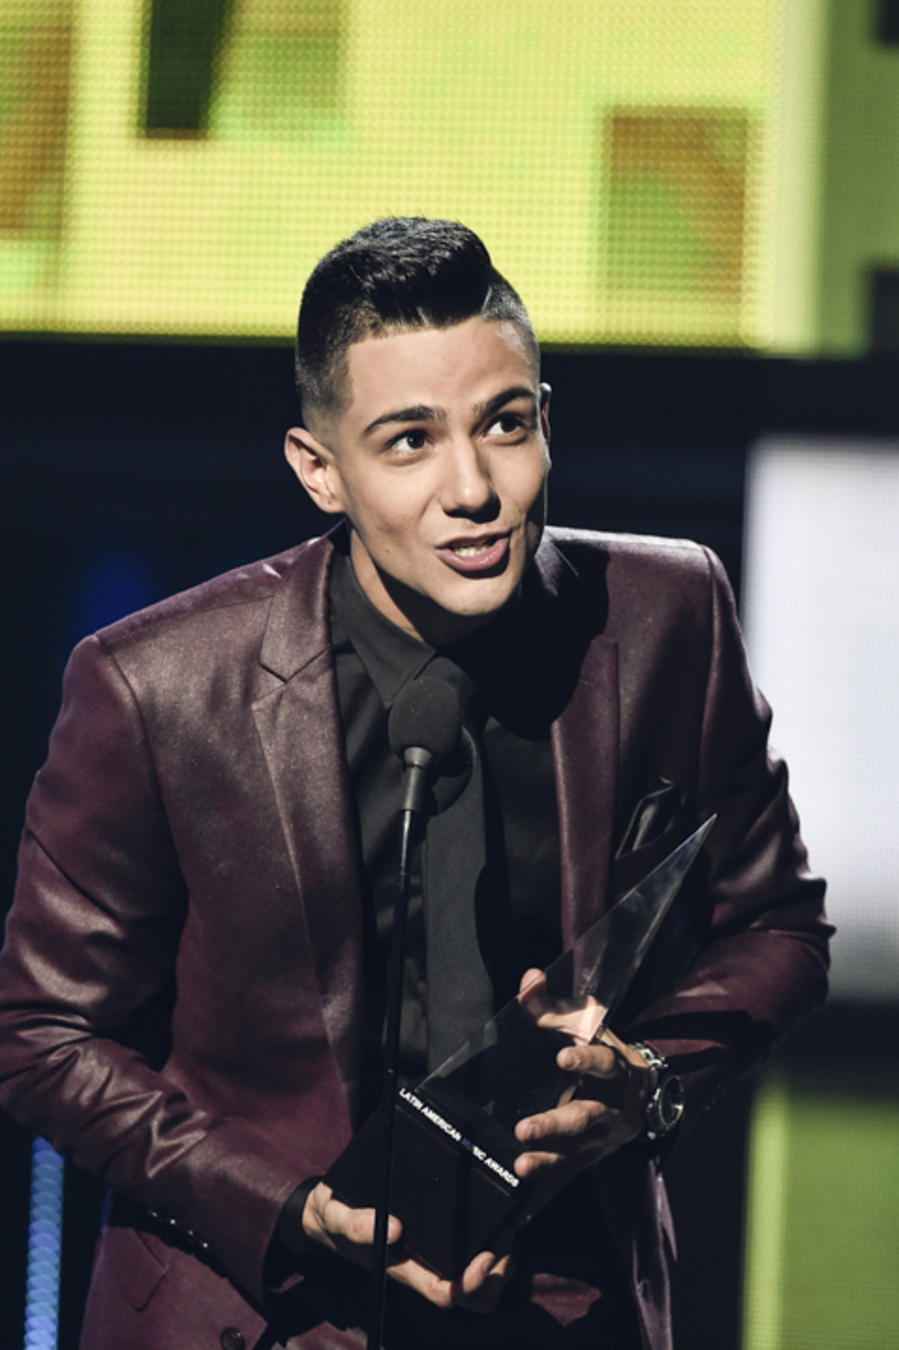 Luis Coronel at the Latin American Music Awards 2015